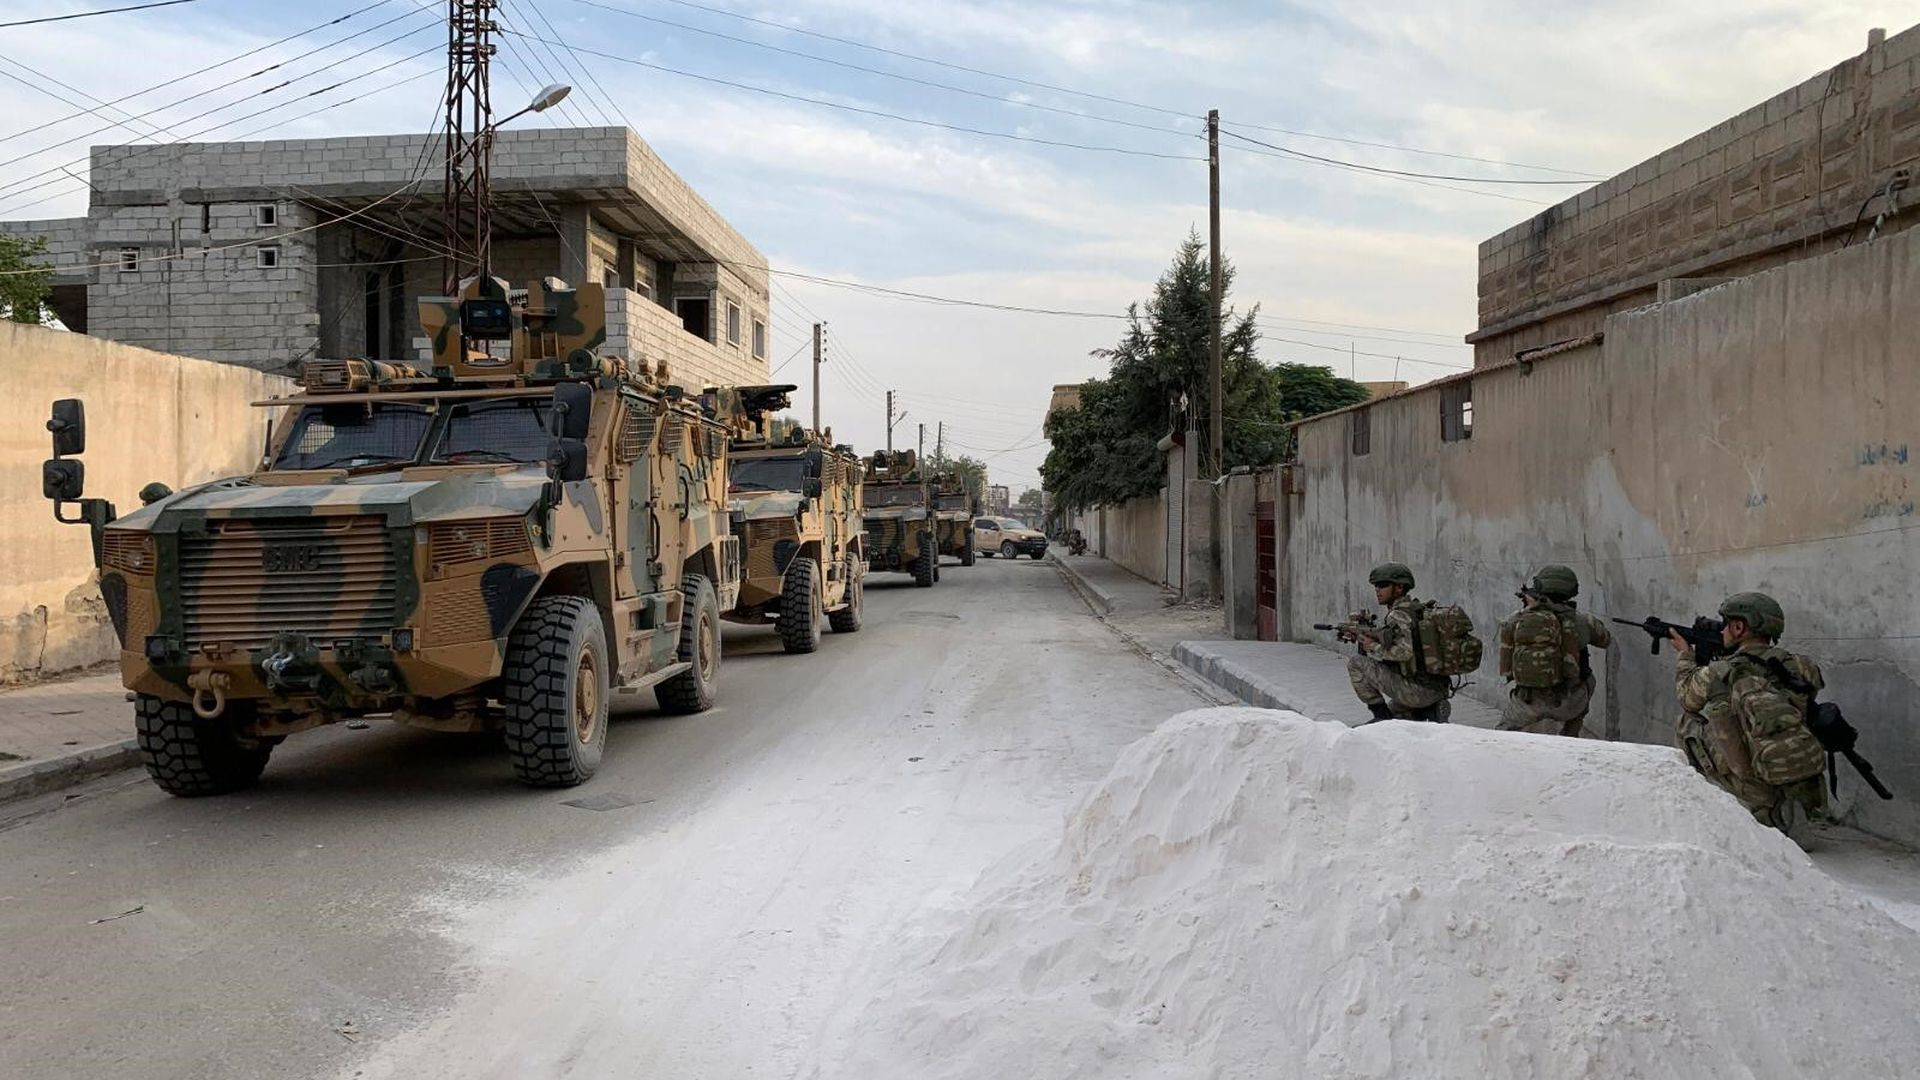 Turkish soldiers posted along a road in a Syrian border town